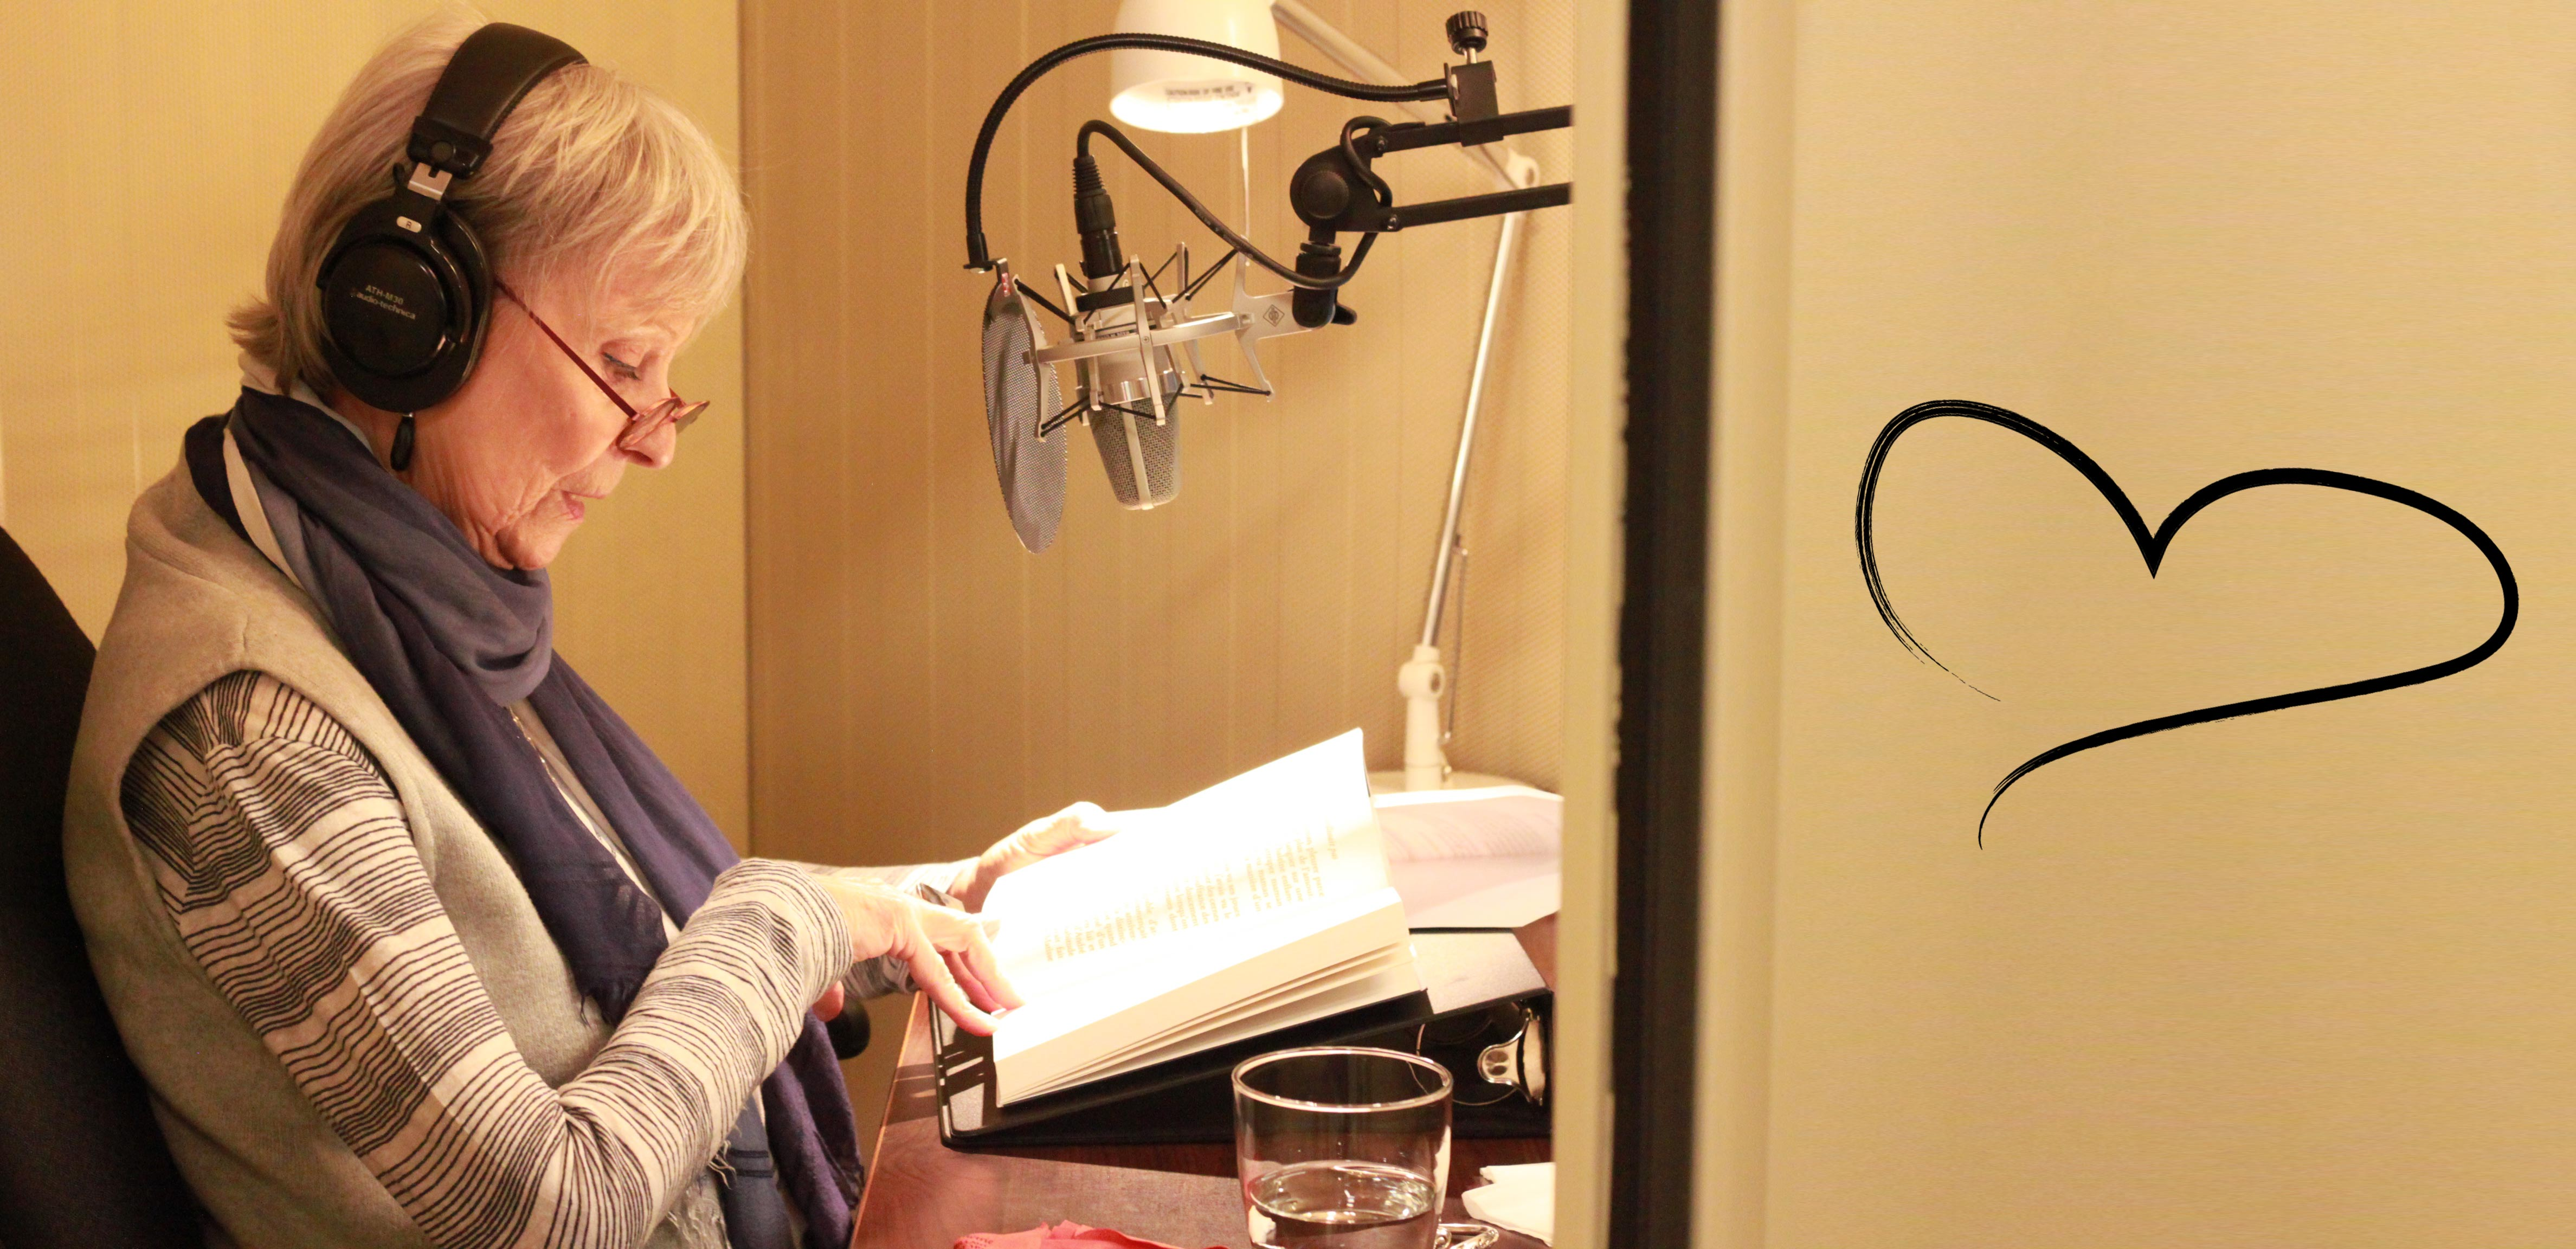 Celine Garneau, reading from a book in one of CNIB's recording studios. A heart graphic can be seen on the wall in the right side of the picture